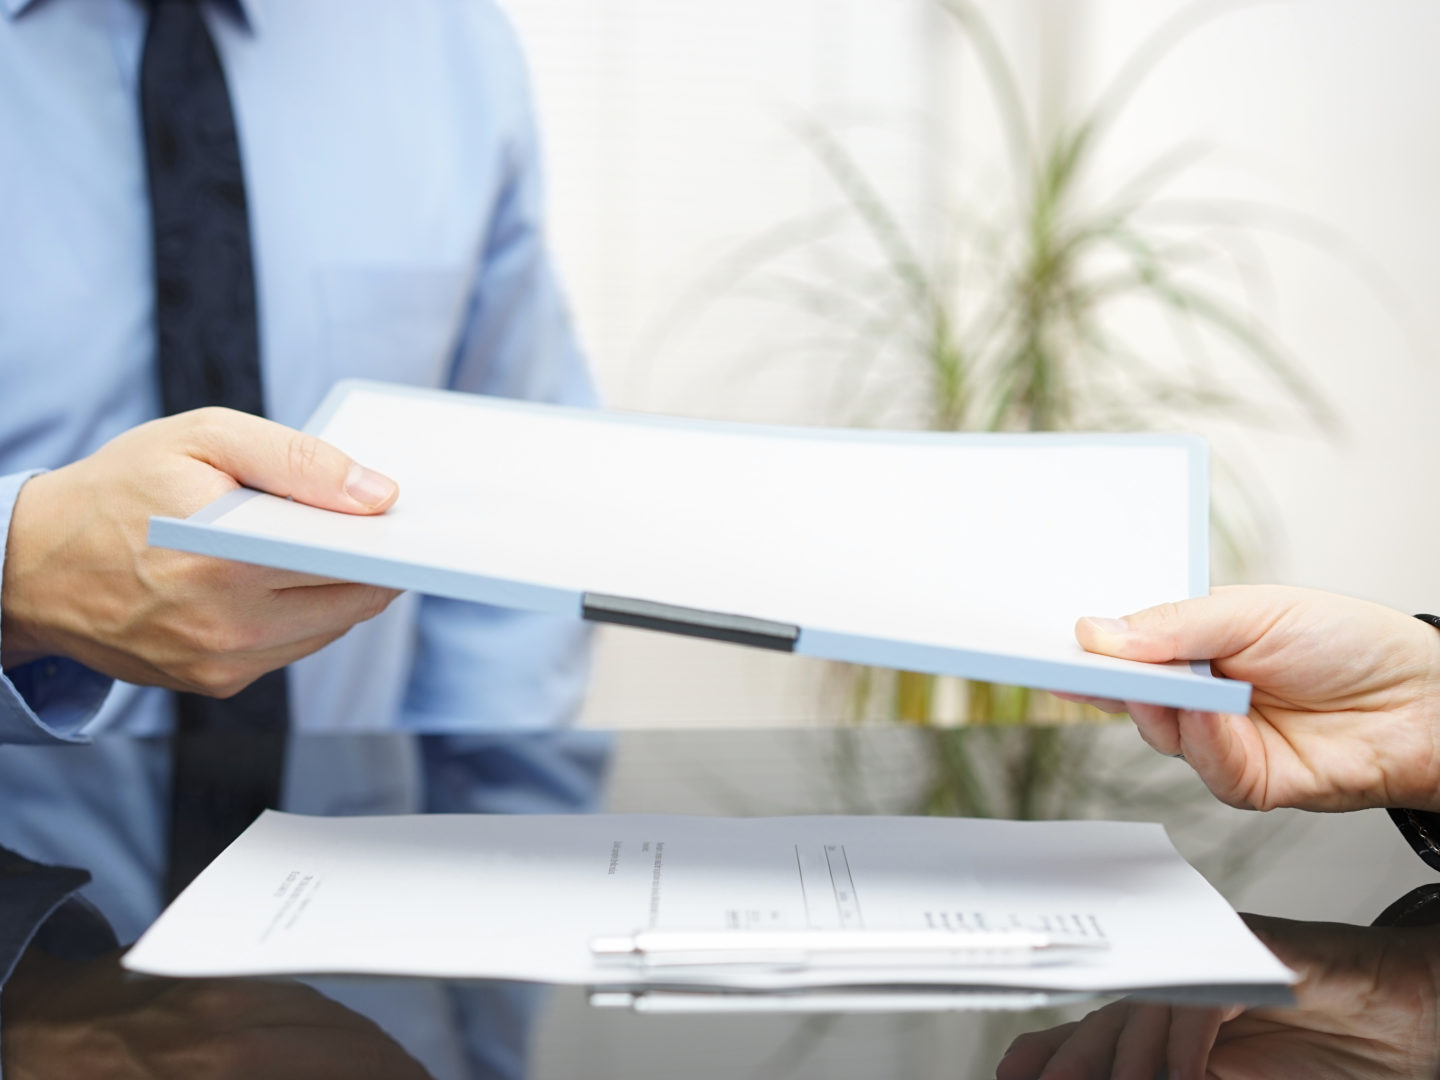 Two people exchanging documents